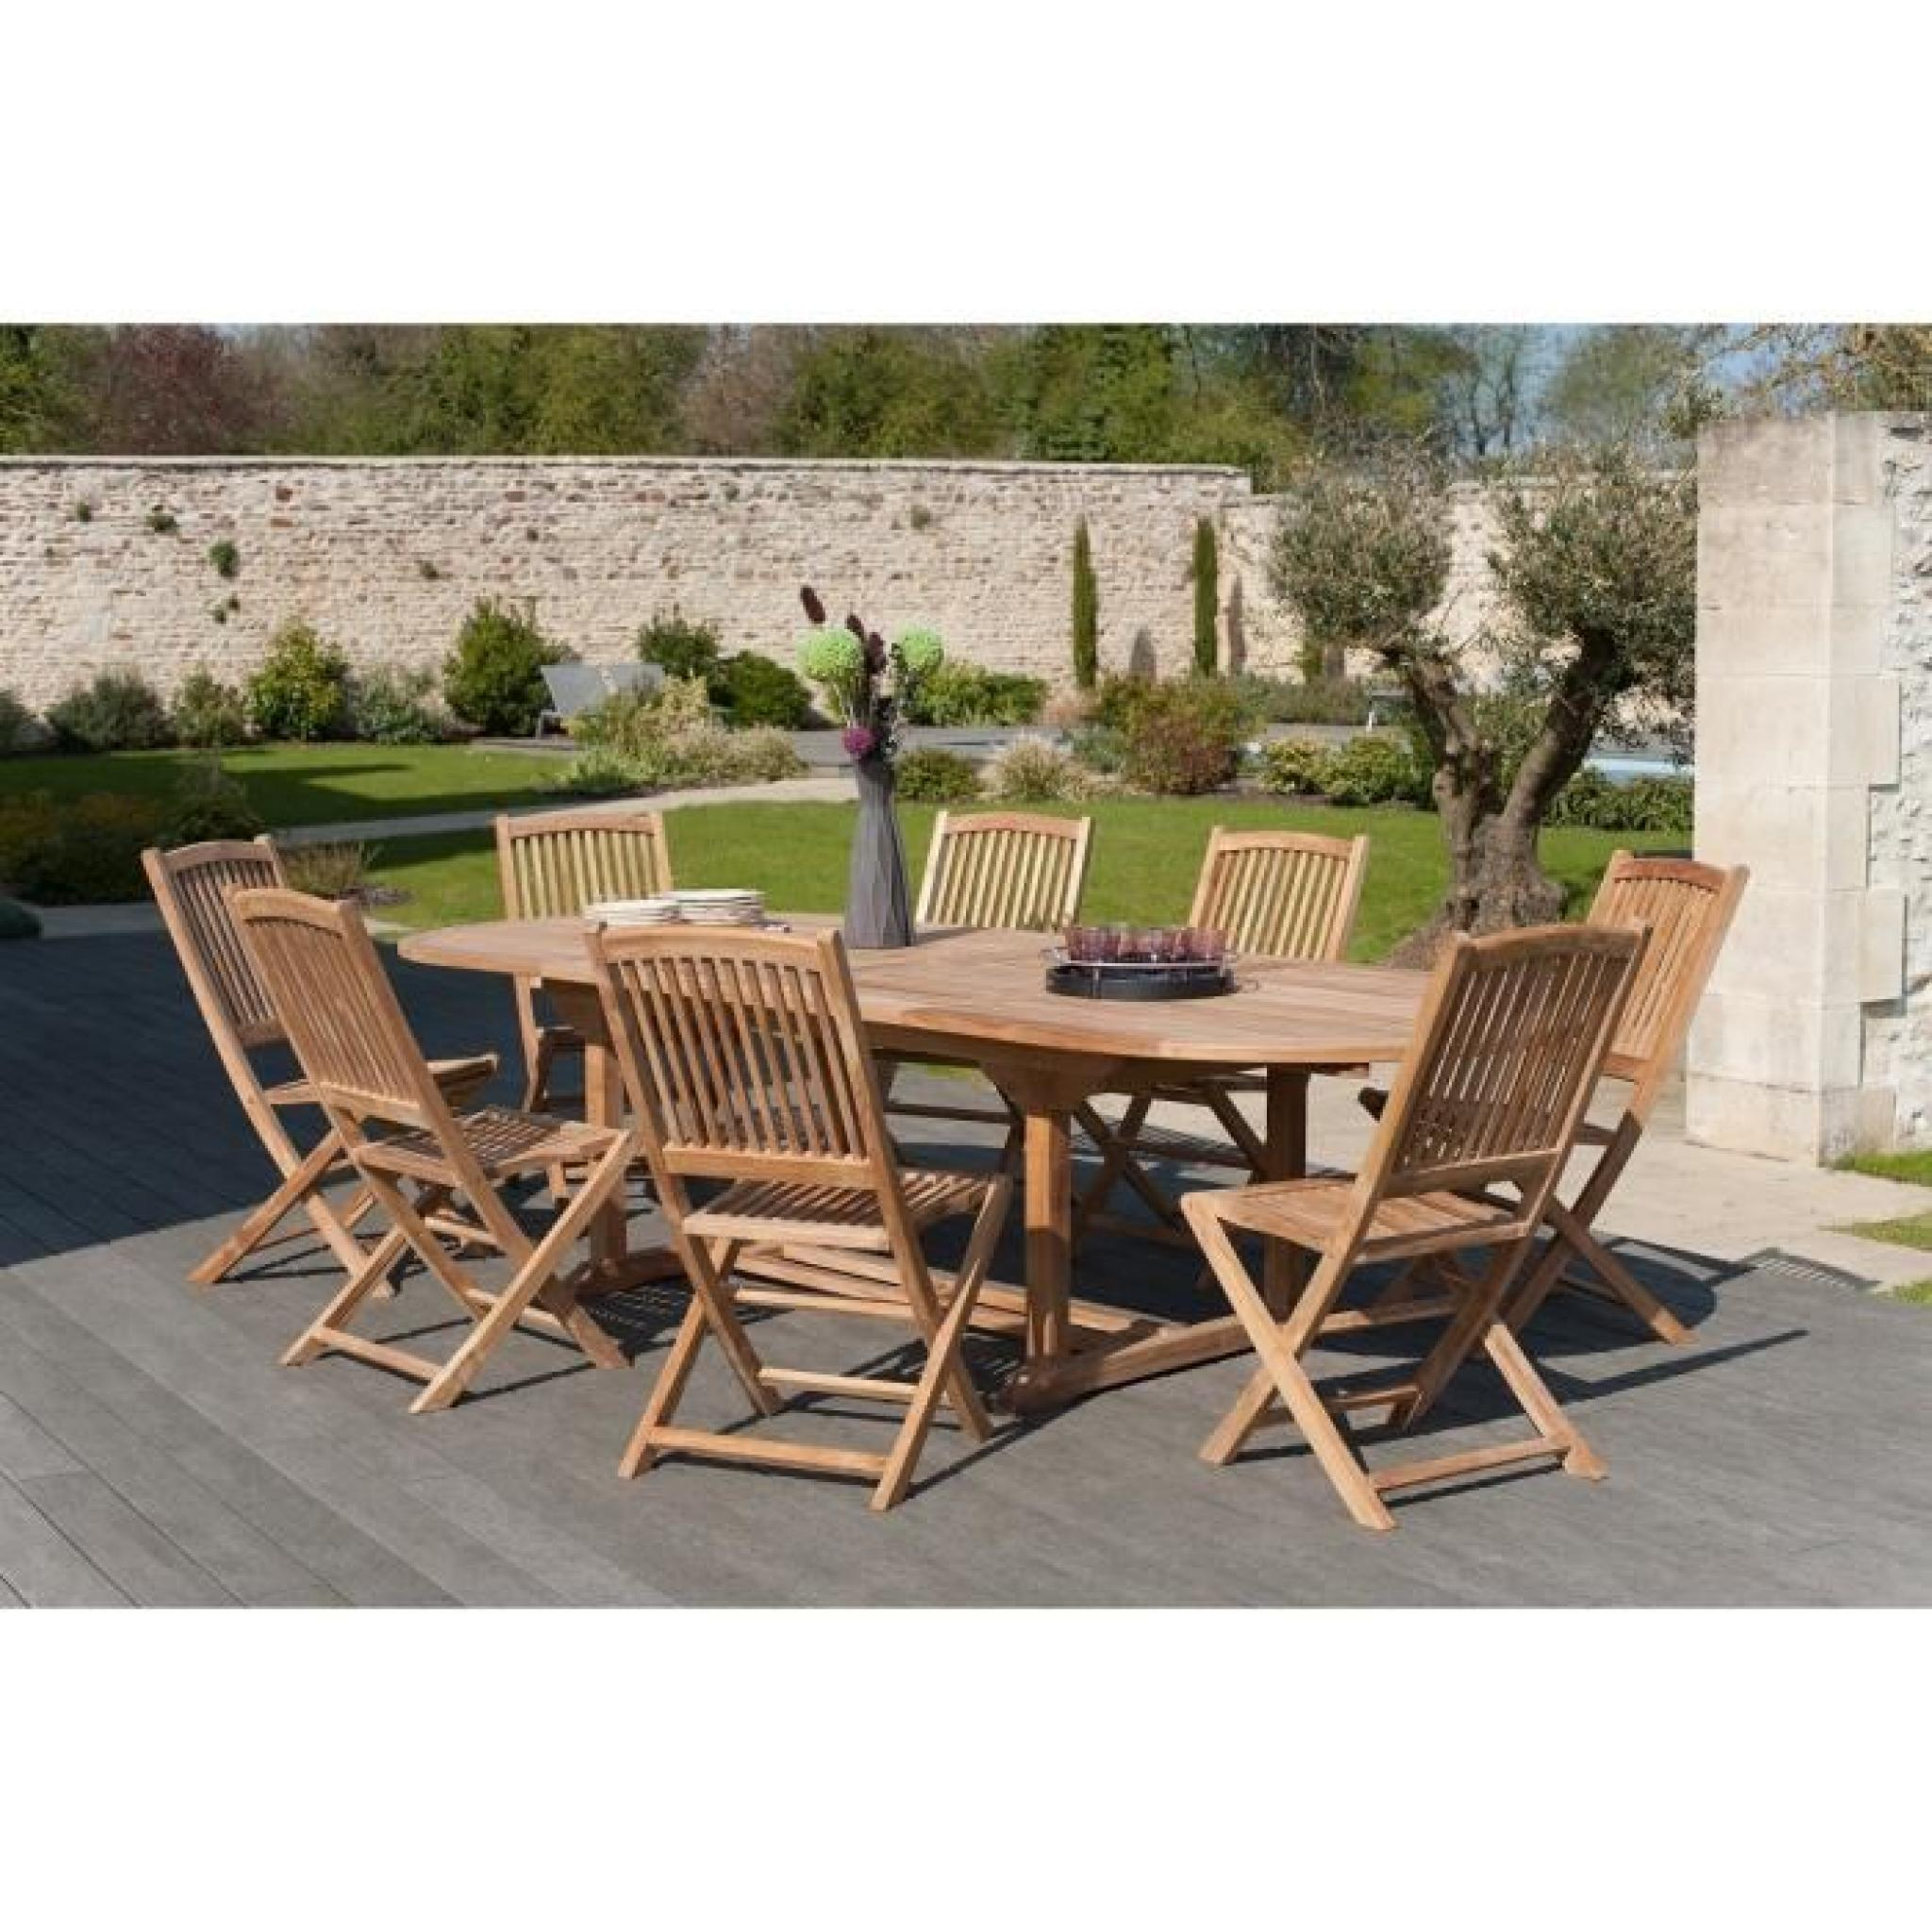 Ensemble en teck table ovale extensible de jardin 180 for Ensemble table chaise de jardin pas cher